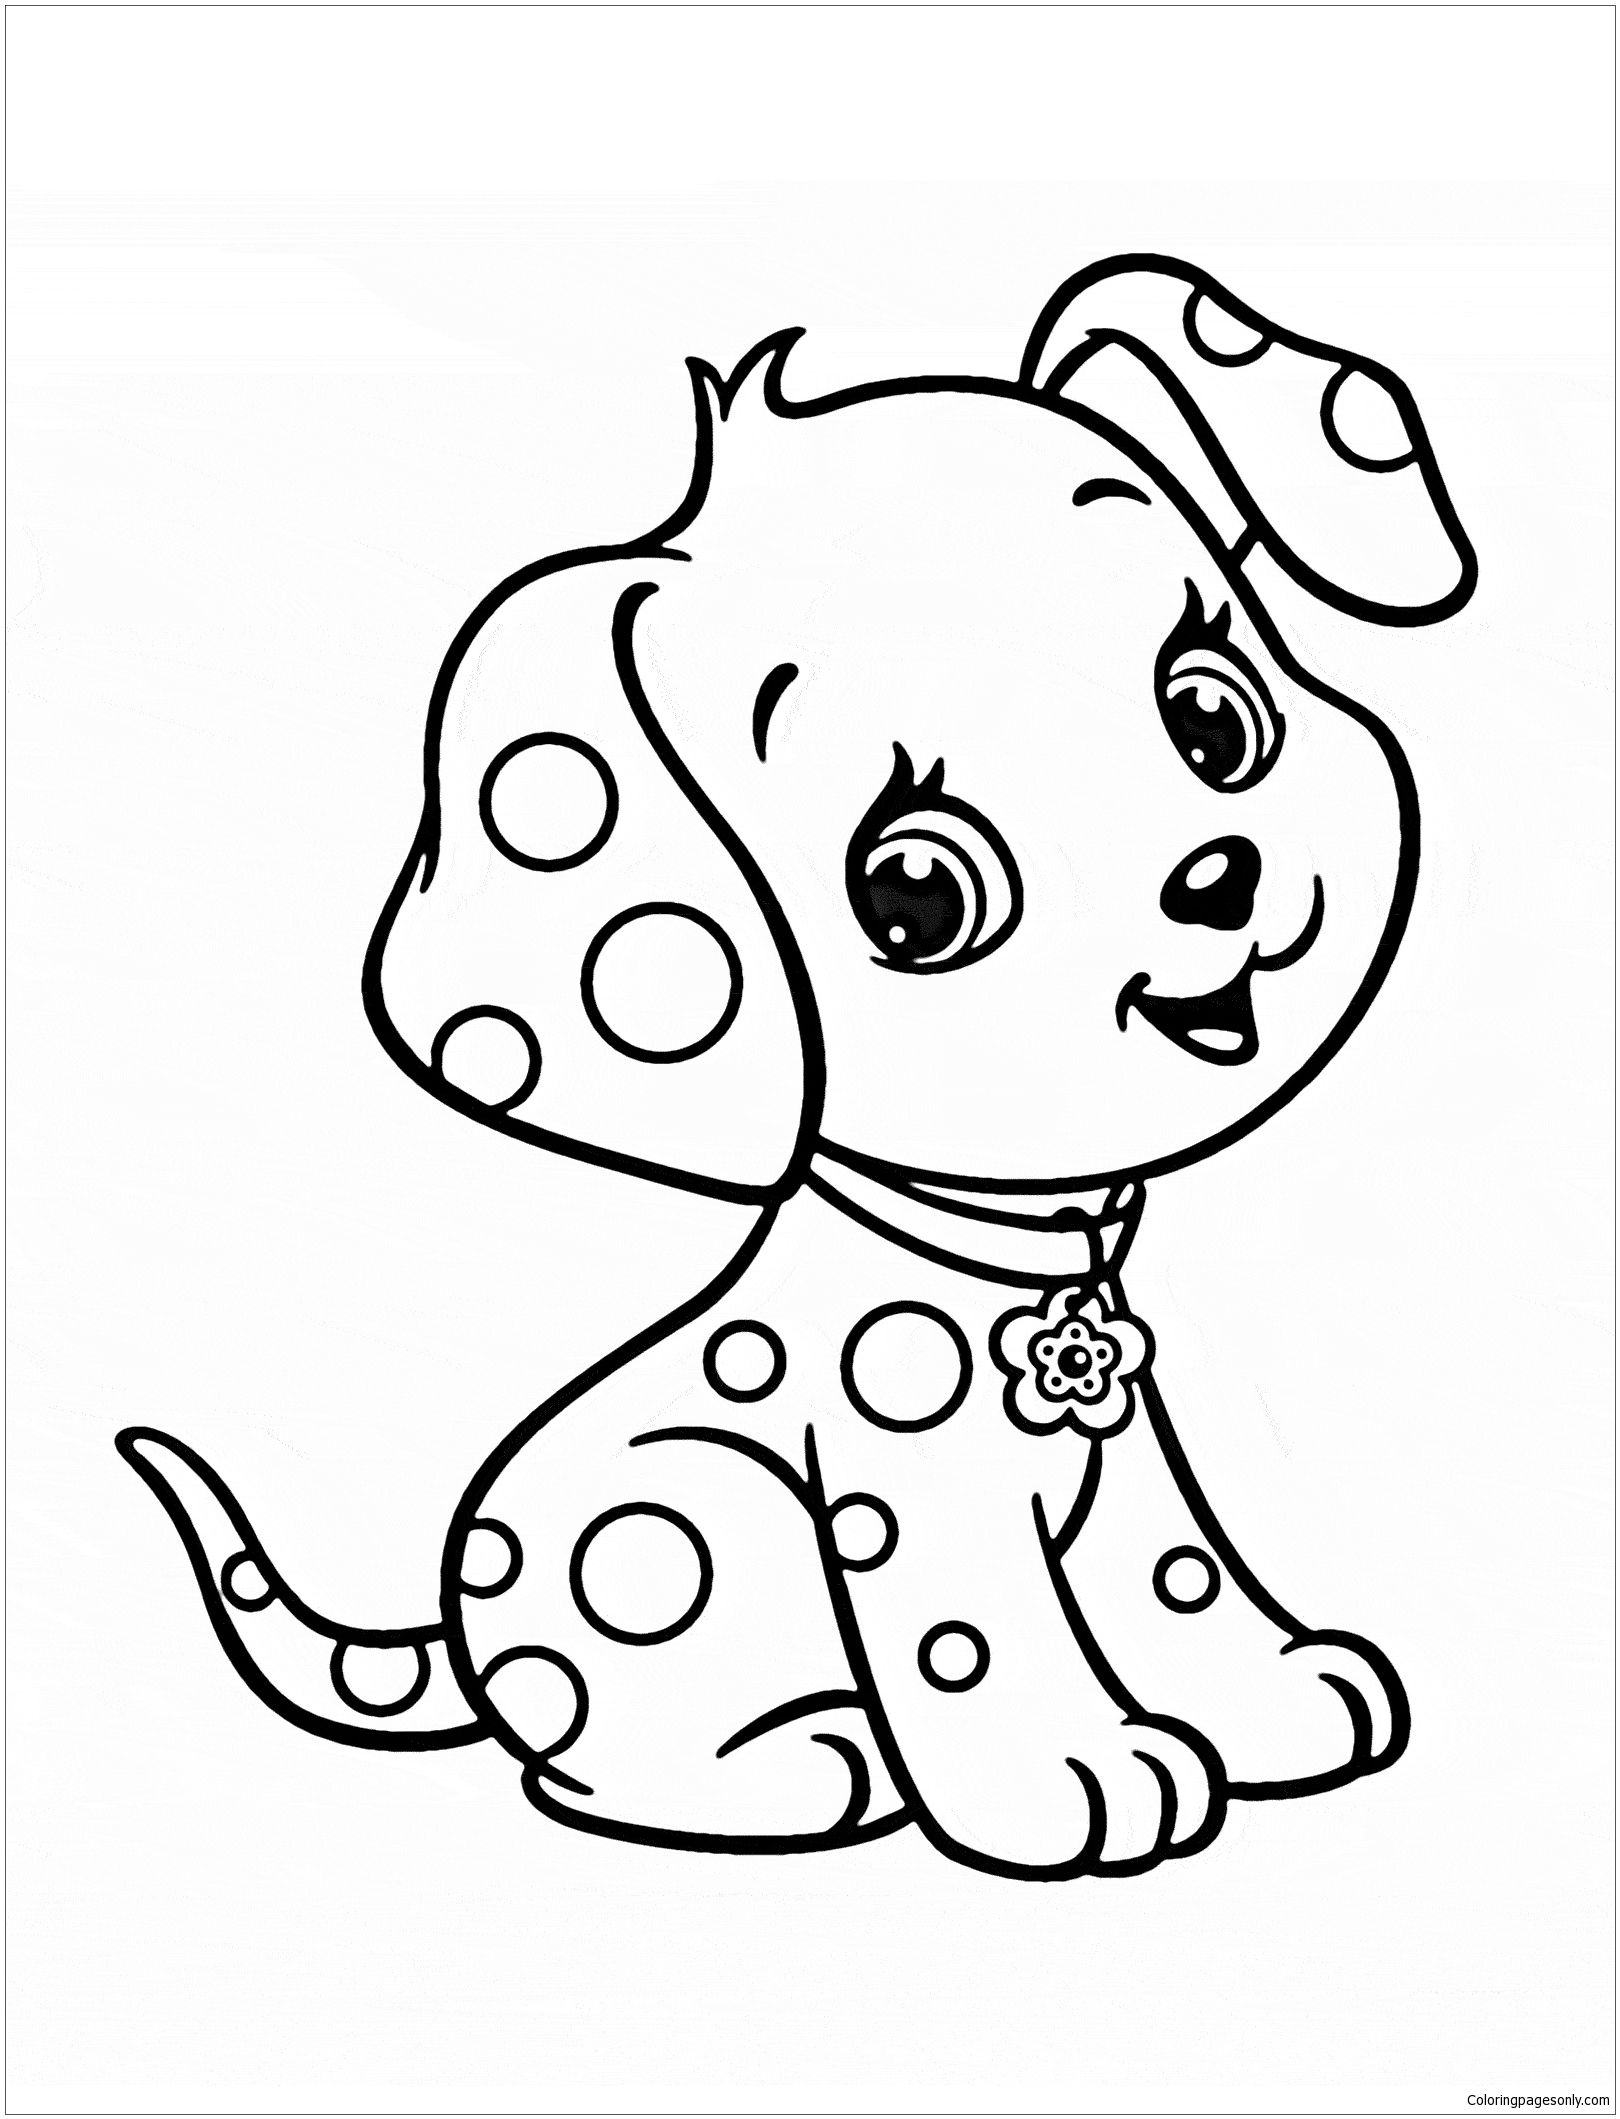 Cute Puppy 5 Coloring Page Puppy Coloring Pages Dog Coloring Page Animal Coloring Books